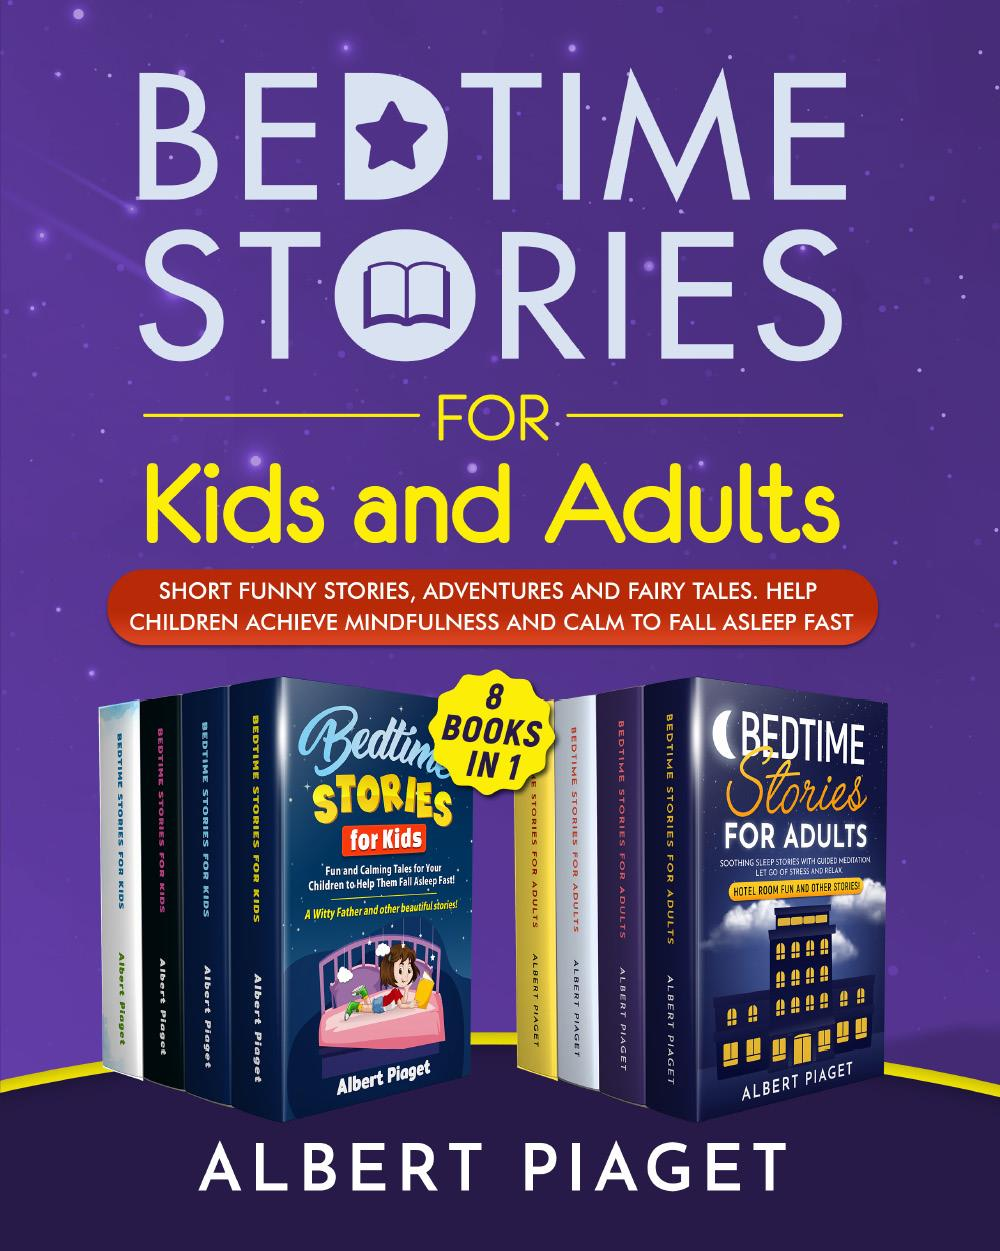 Bedtime Stories (8 Books in 1). Bedtime Stories for Kids and Adults. Short Funny Stories, Adventures and Fairy Tales. Help Children Achieve Mindfulness and Calm to Fall Asleep Fast